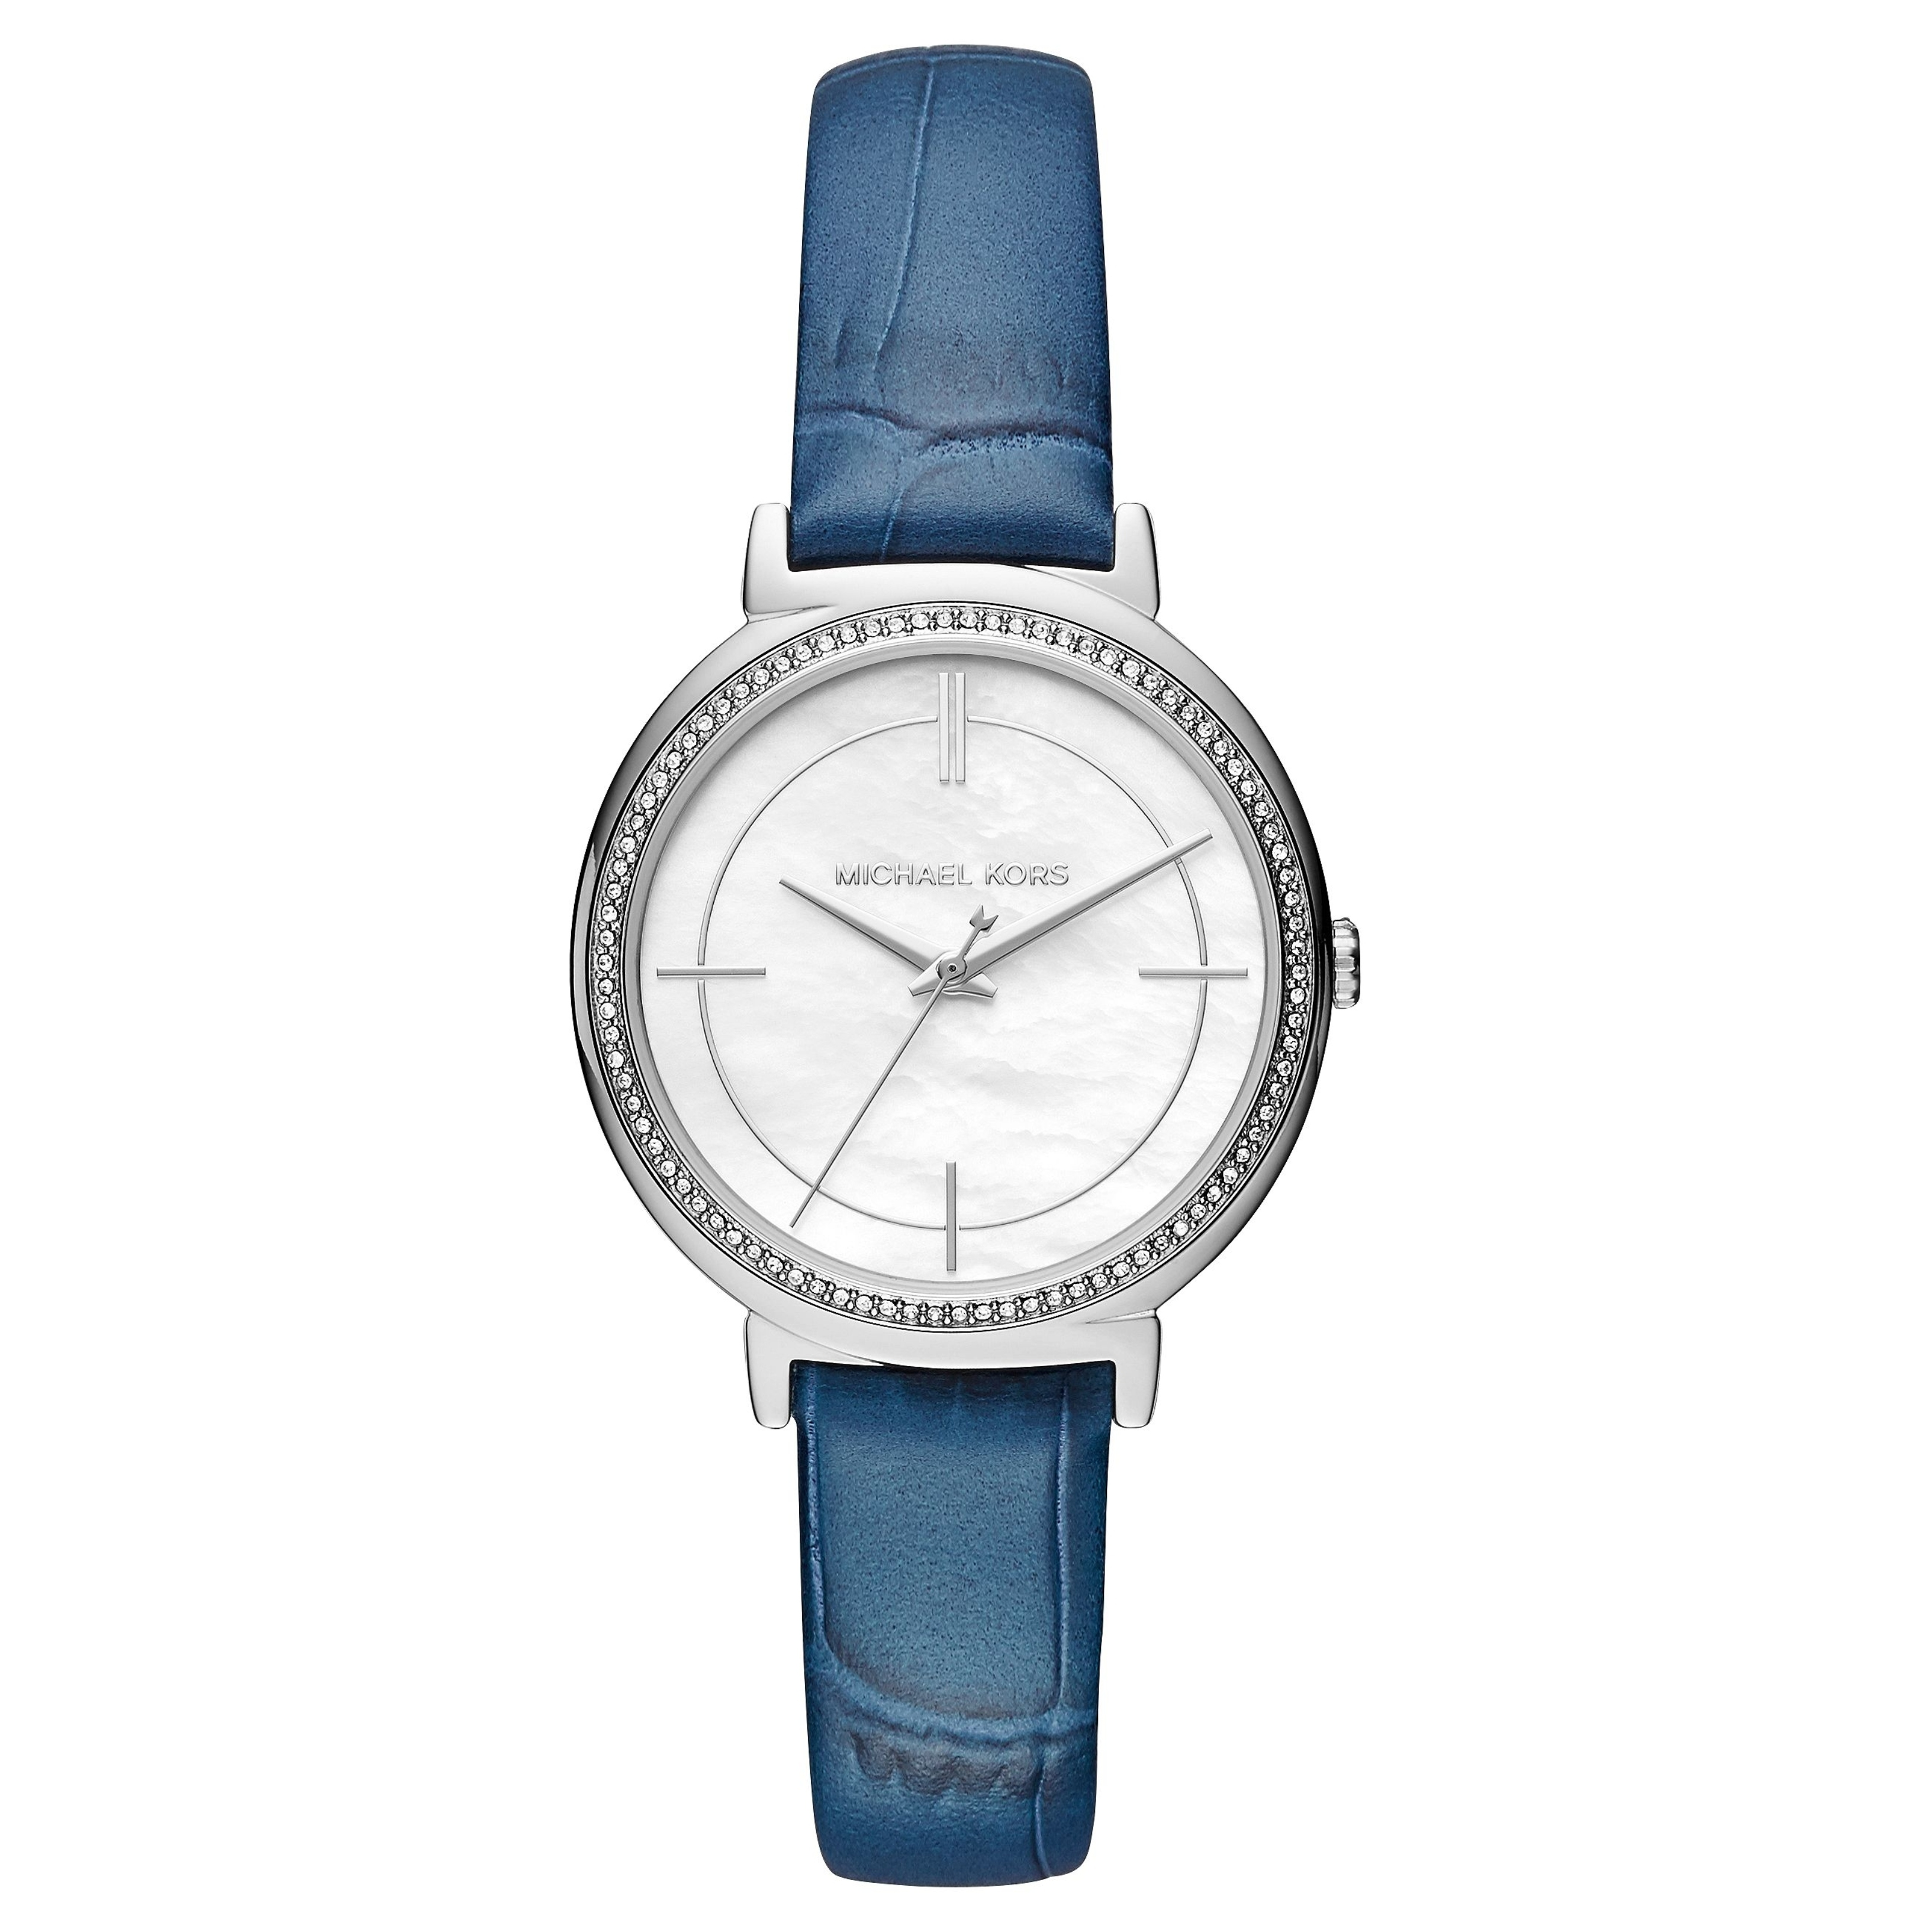 Michael Kors Cinthia White Mother Of Pearl Dial Leather Band Ladies Watch MK2661